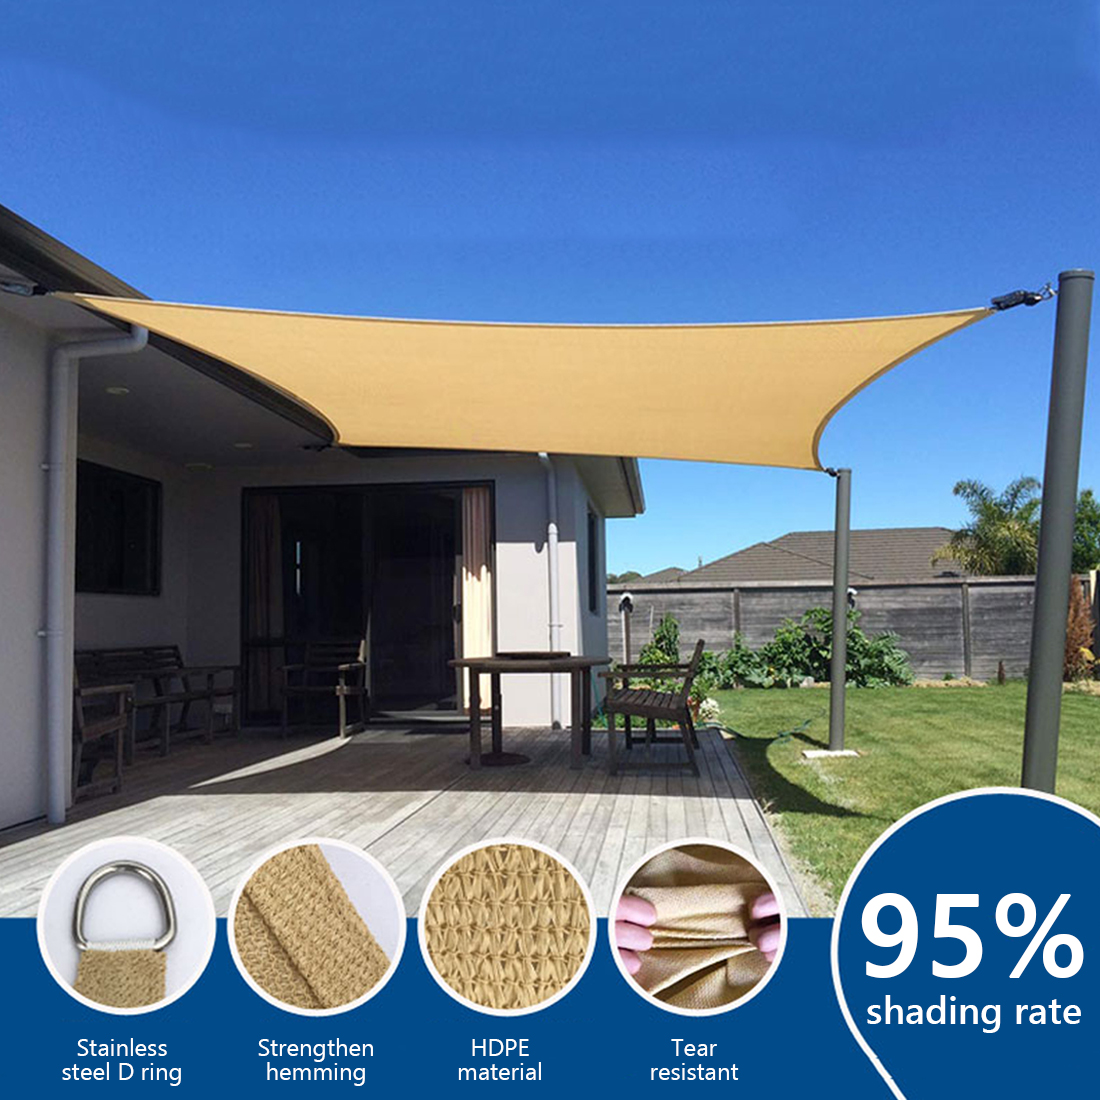 HDPE Anti-UV Waterproof Sun Shelter Sunshade Protection Outdoor Canopy Garden Patio Pool Shade Sail Awning Camping Picnic Tent